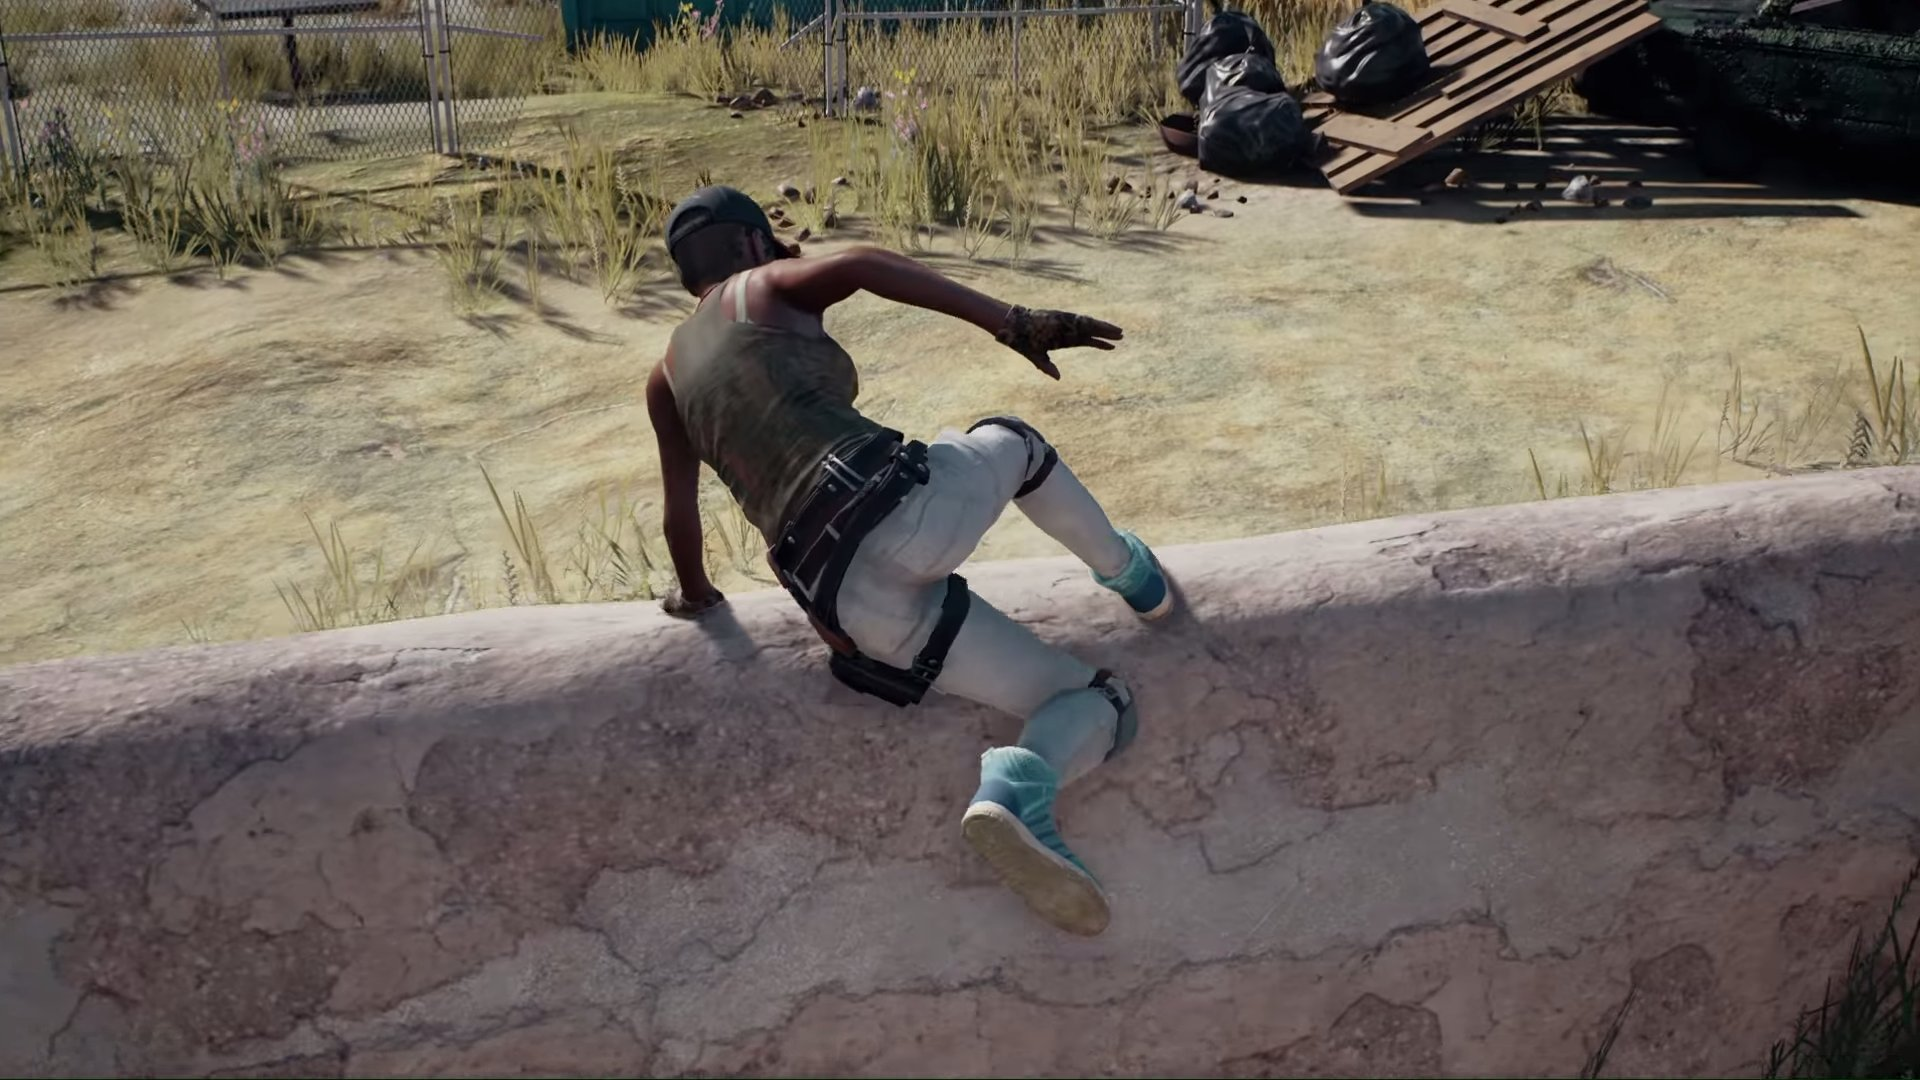 CLIMBING - PLAYERUNKNOWNS BATTLEGROUNDS